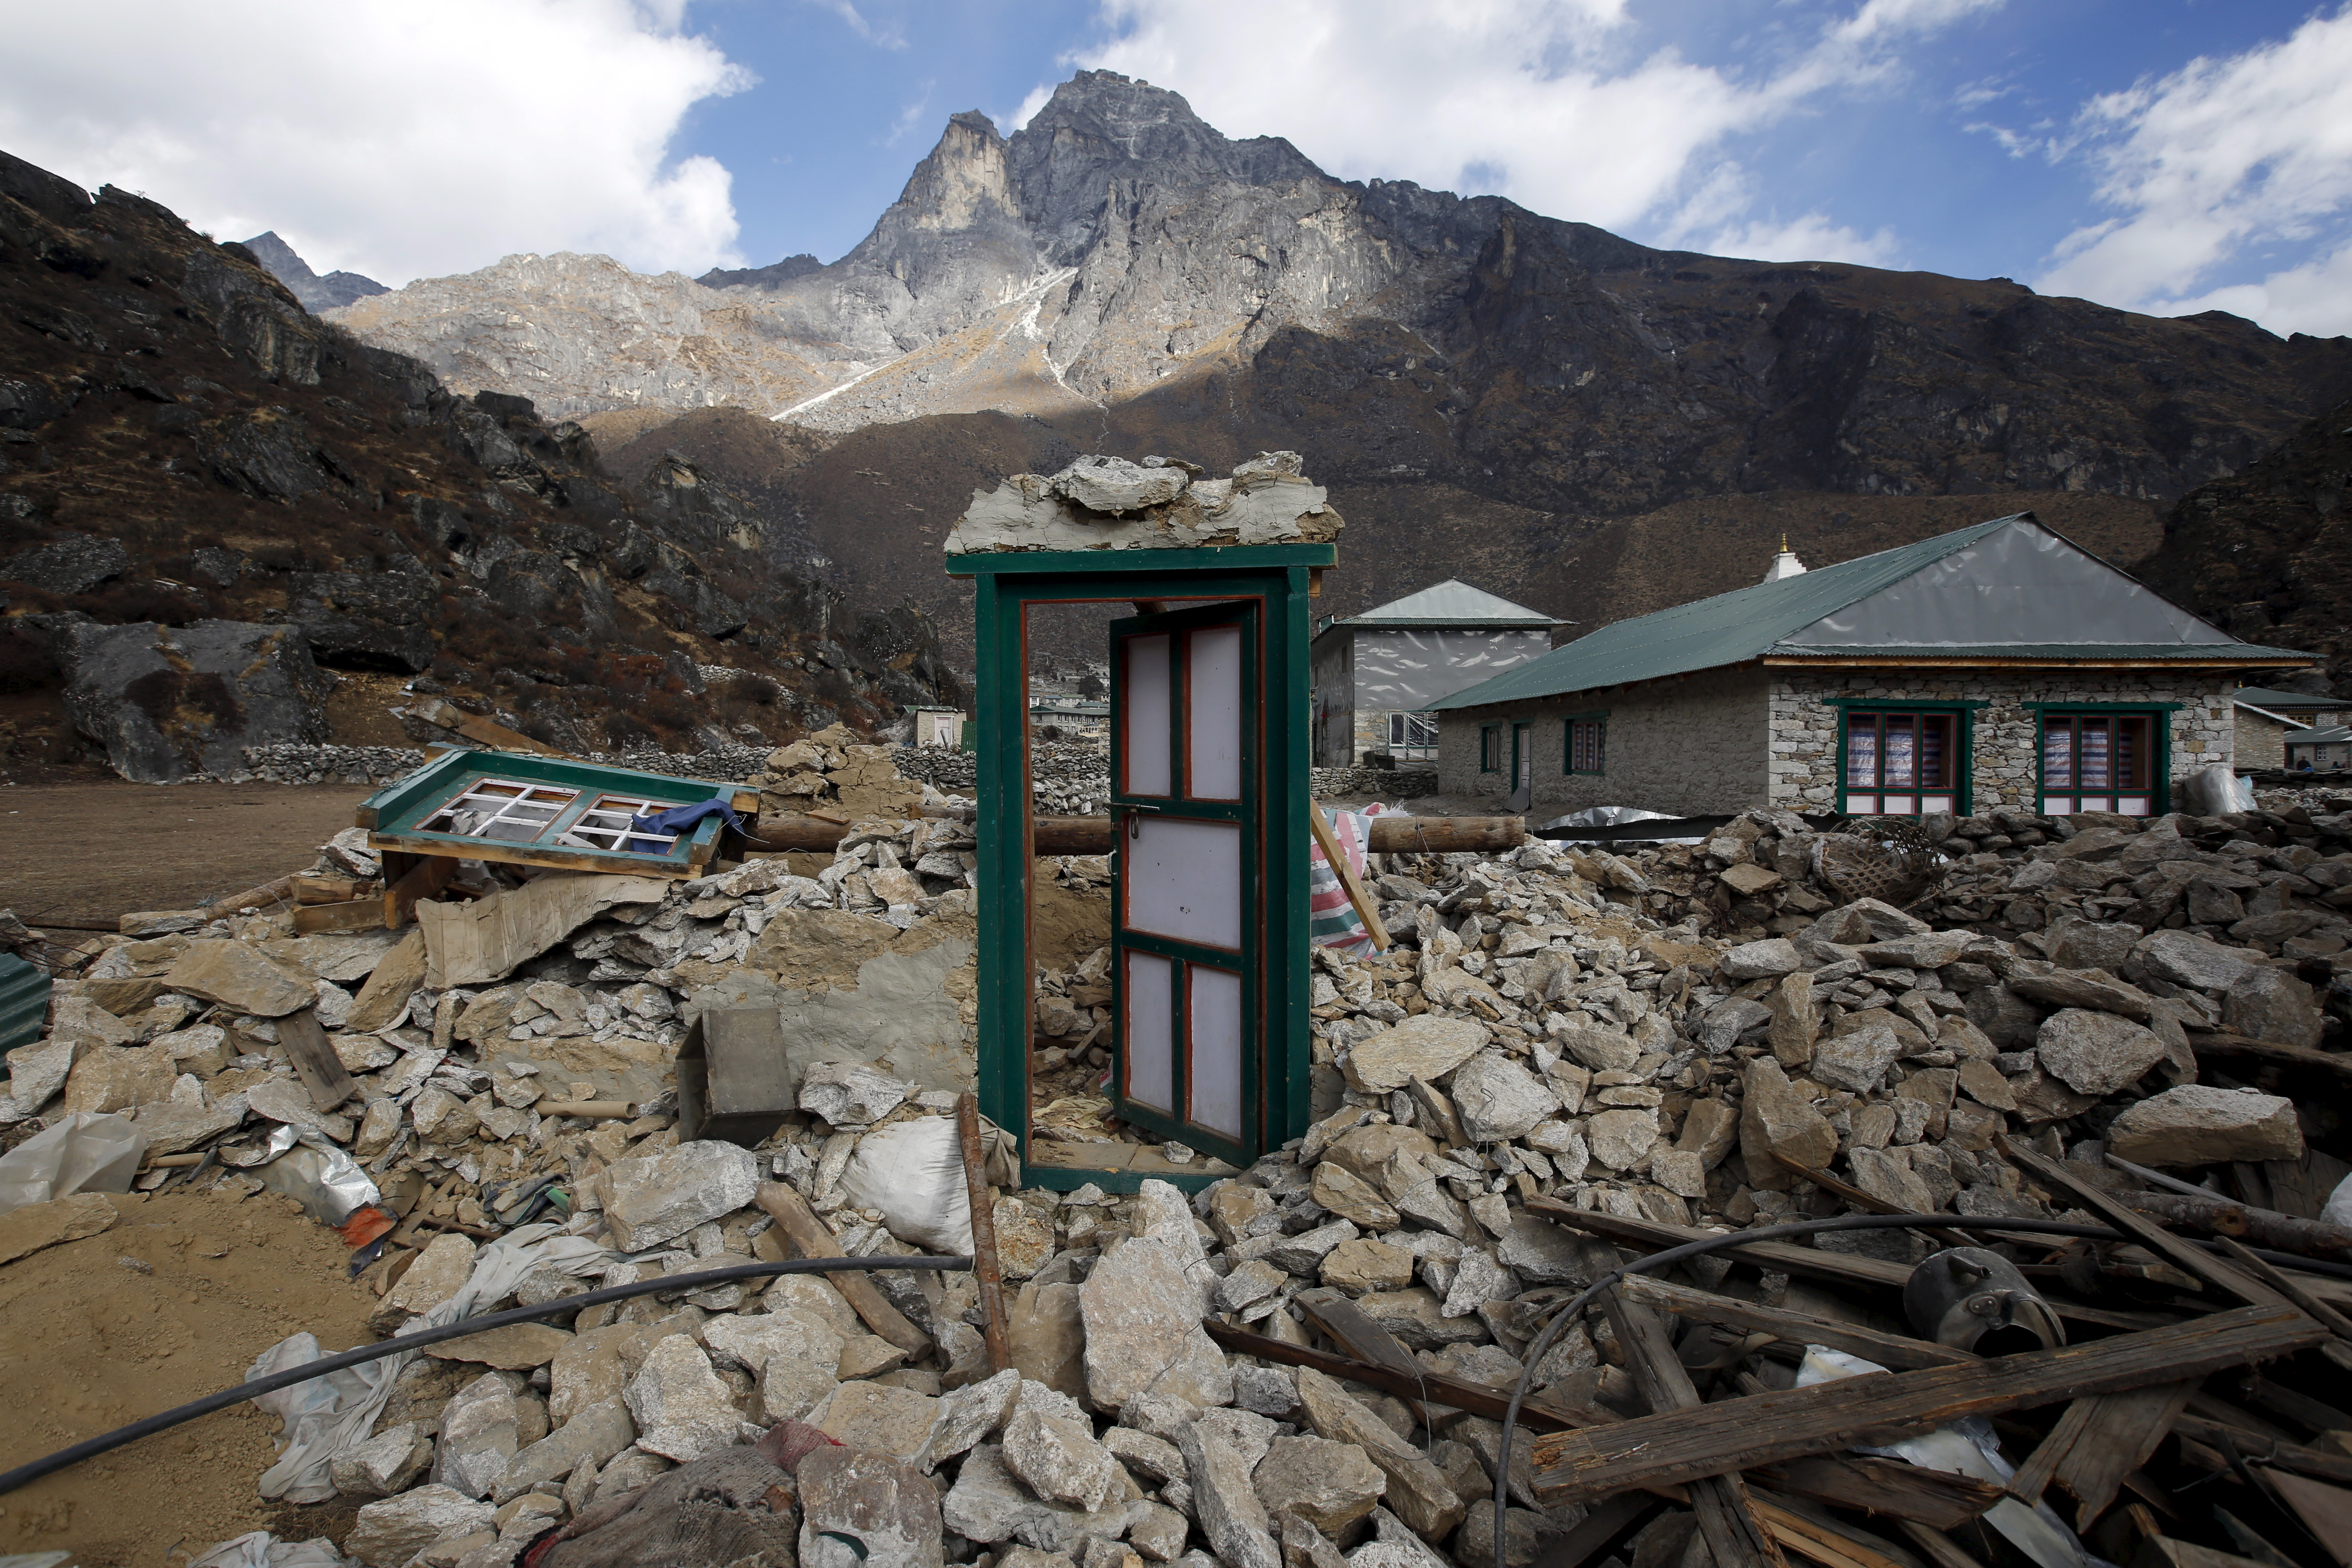 A door of a collapsed house stands after the earthquake damaged it earlier this year at Khumjung, a typical Sherpa village in Solukhumbu district also known as the Everest region, in this picture taken November 30, 2015. To match Insight QUAKE-NEPAL/SHERPAS      REUTERS/Navesh Chitrakar  - RTX1ZEXG